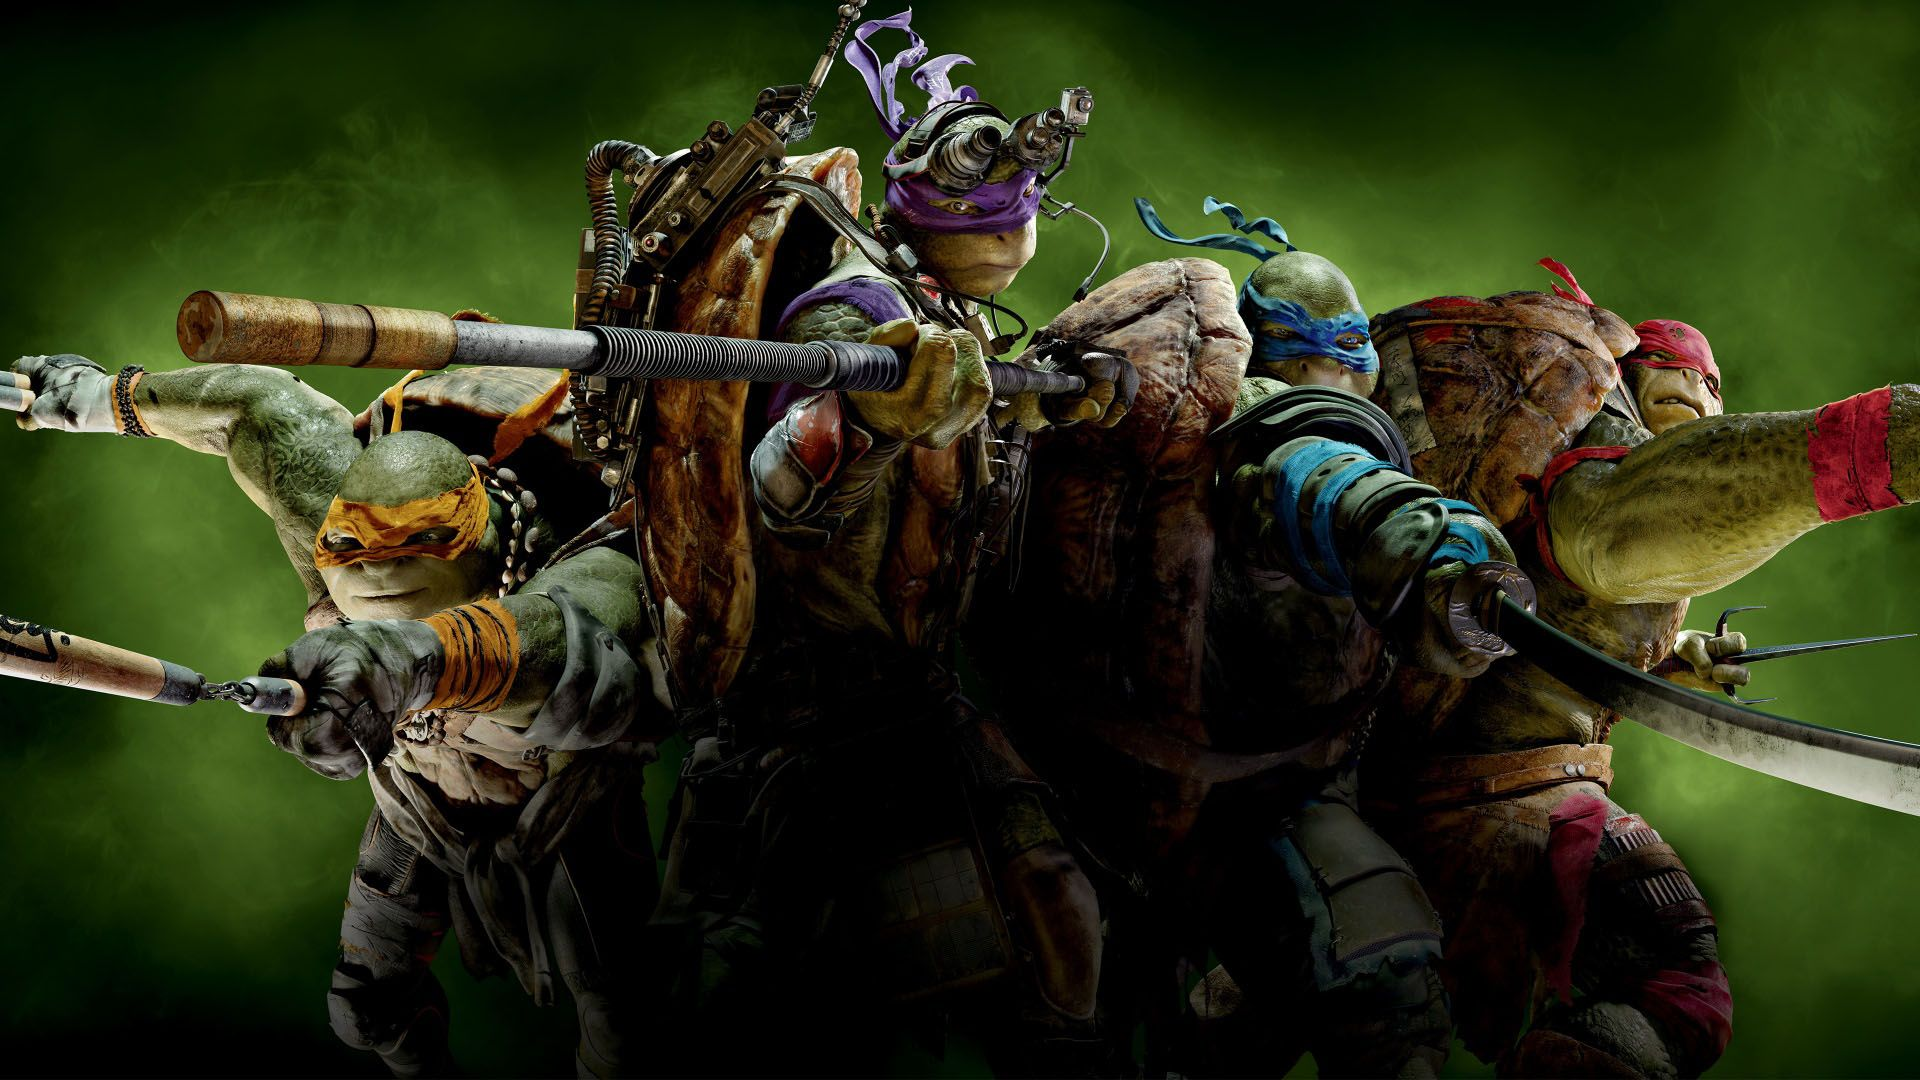 Teenage Mutant Ninja Turtles Wallpapers For Android